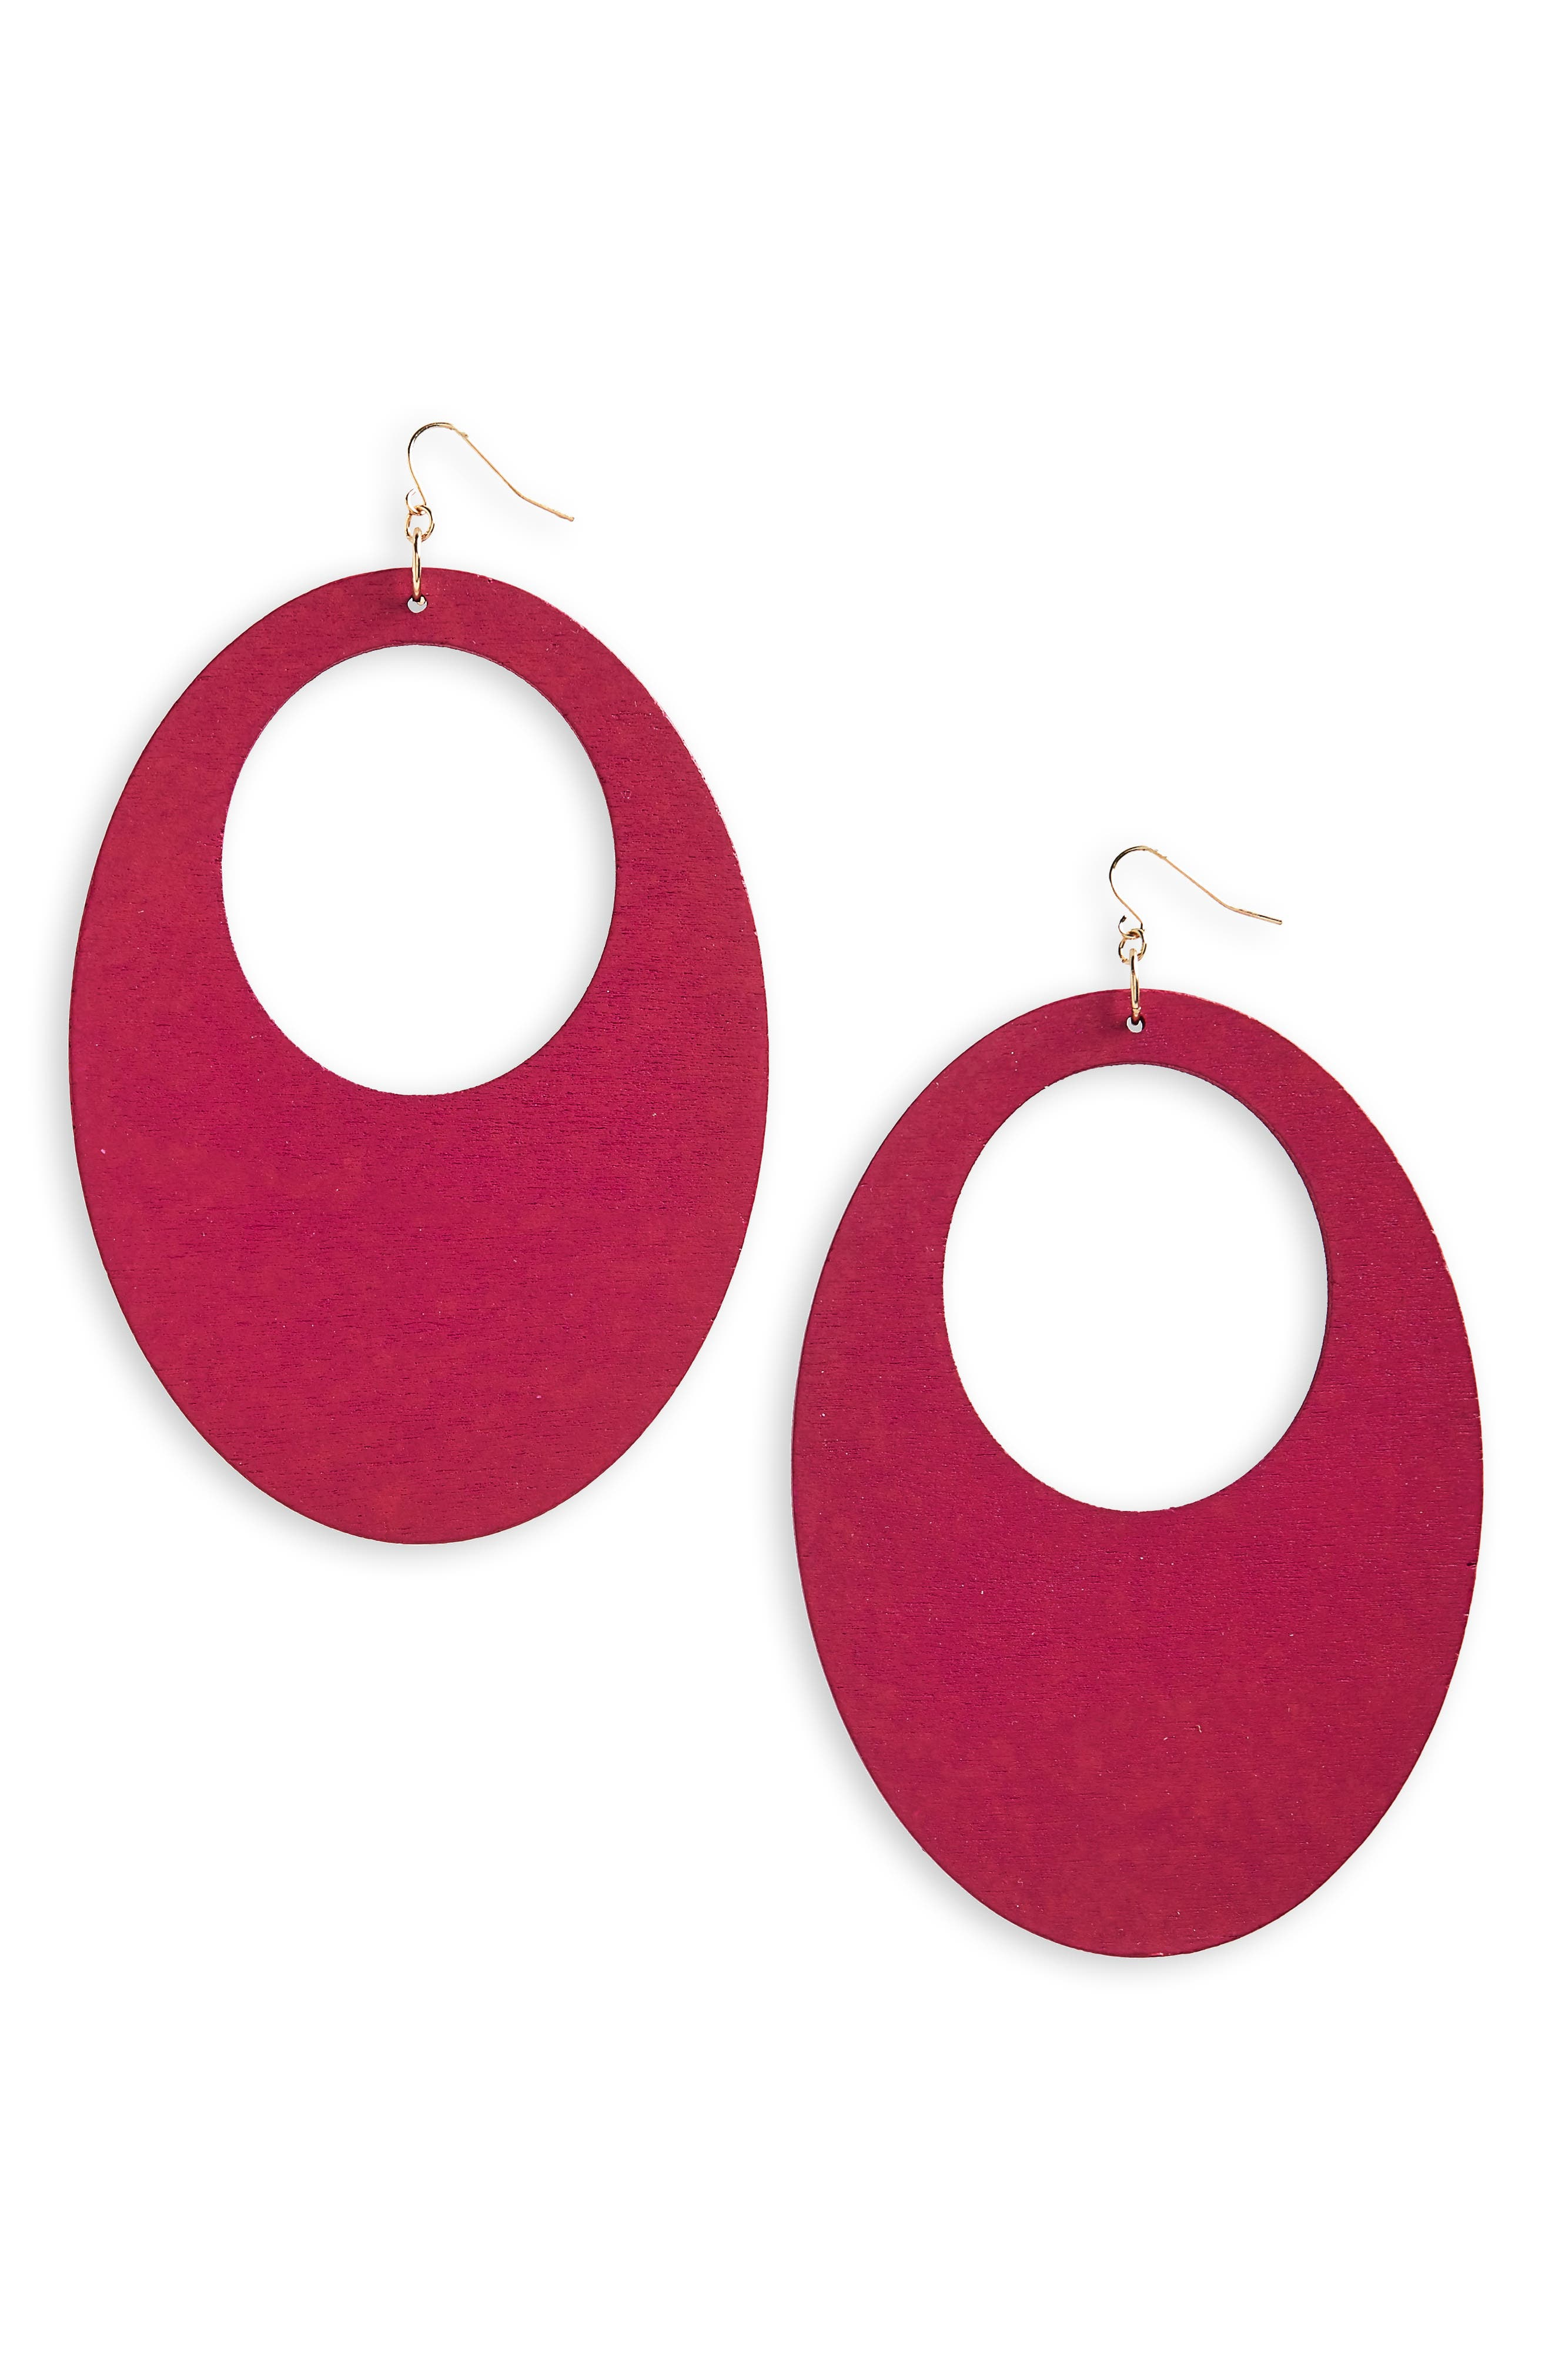 Couture Wood Earrings,                         Main,                         color, Hot Pink